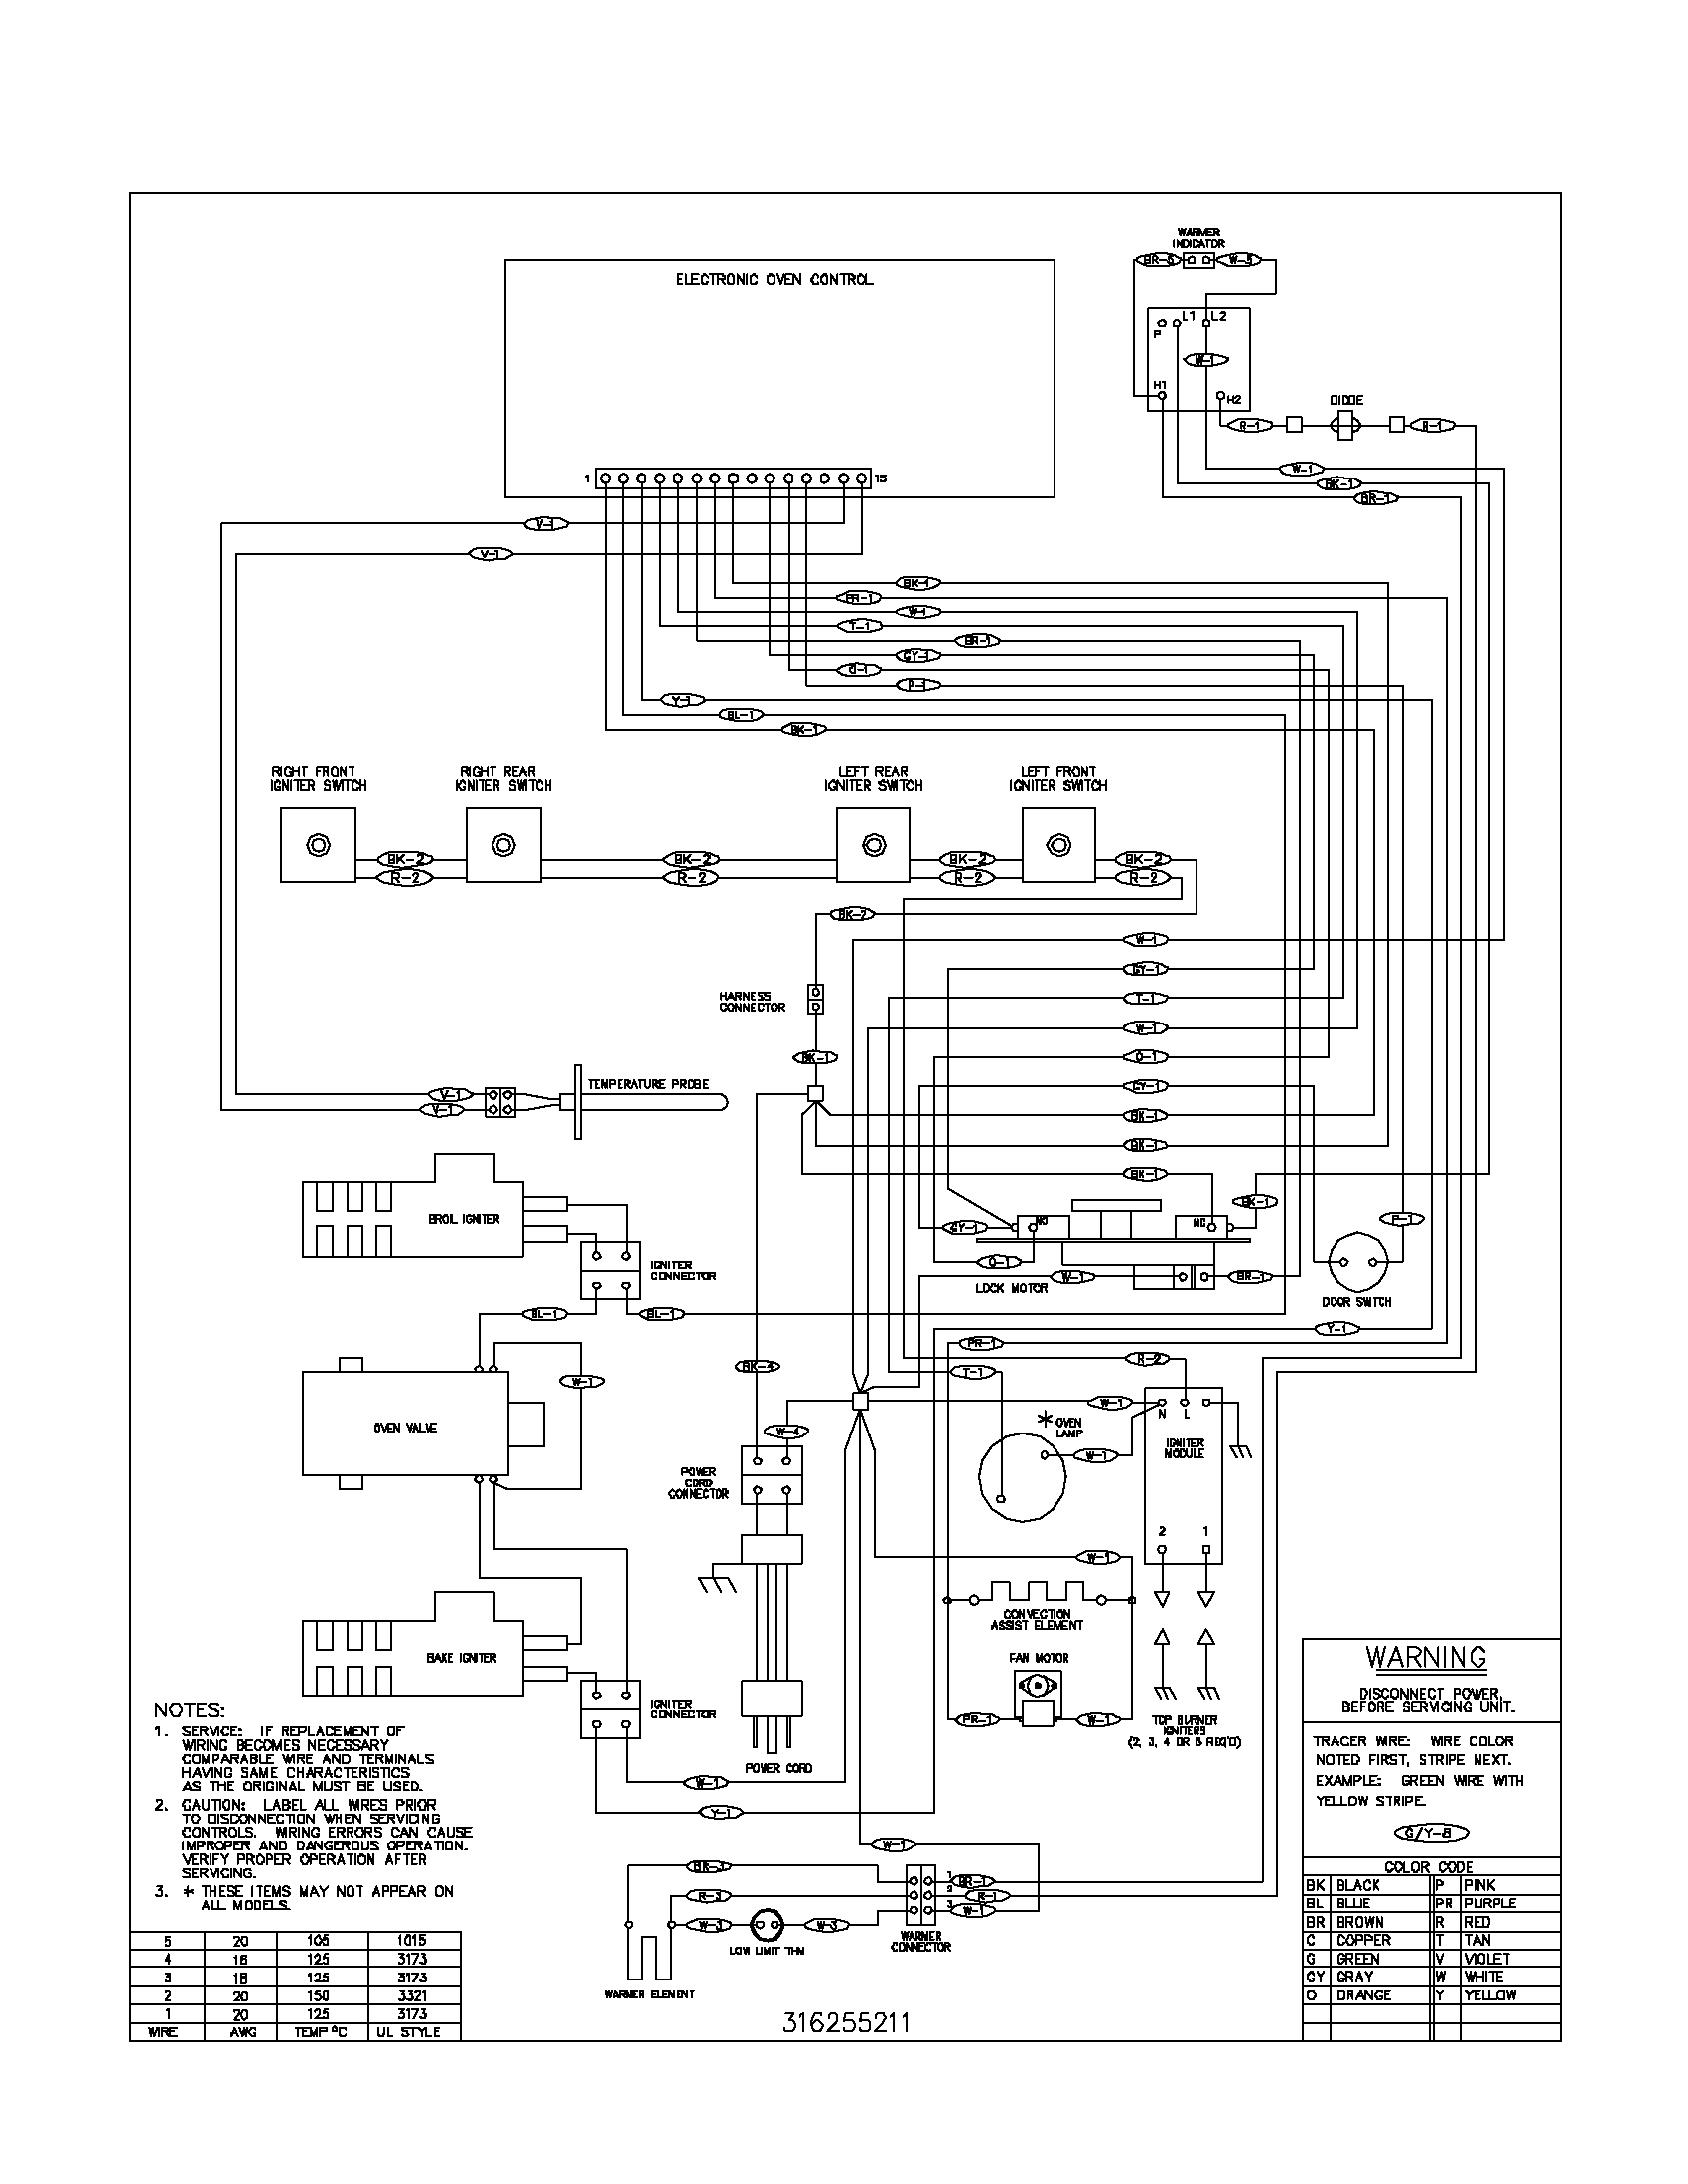 wiring diagram parts sample wiring diagrams appliance aid readingrat net frigidaire gallery dryer wiring diagram at mr168.co